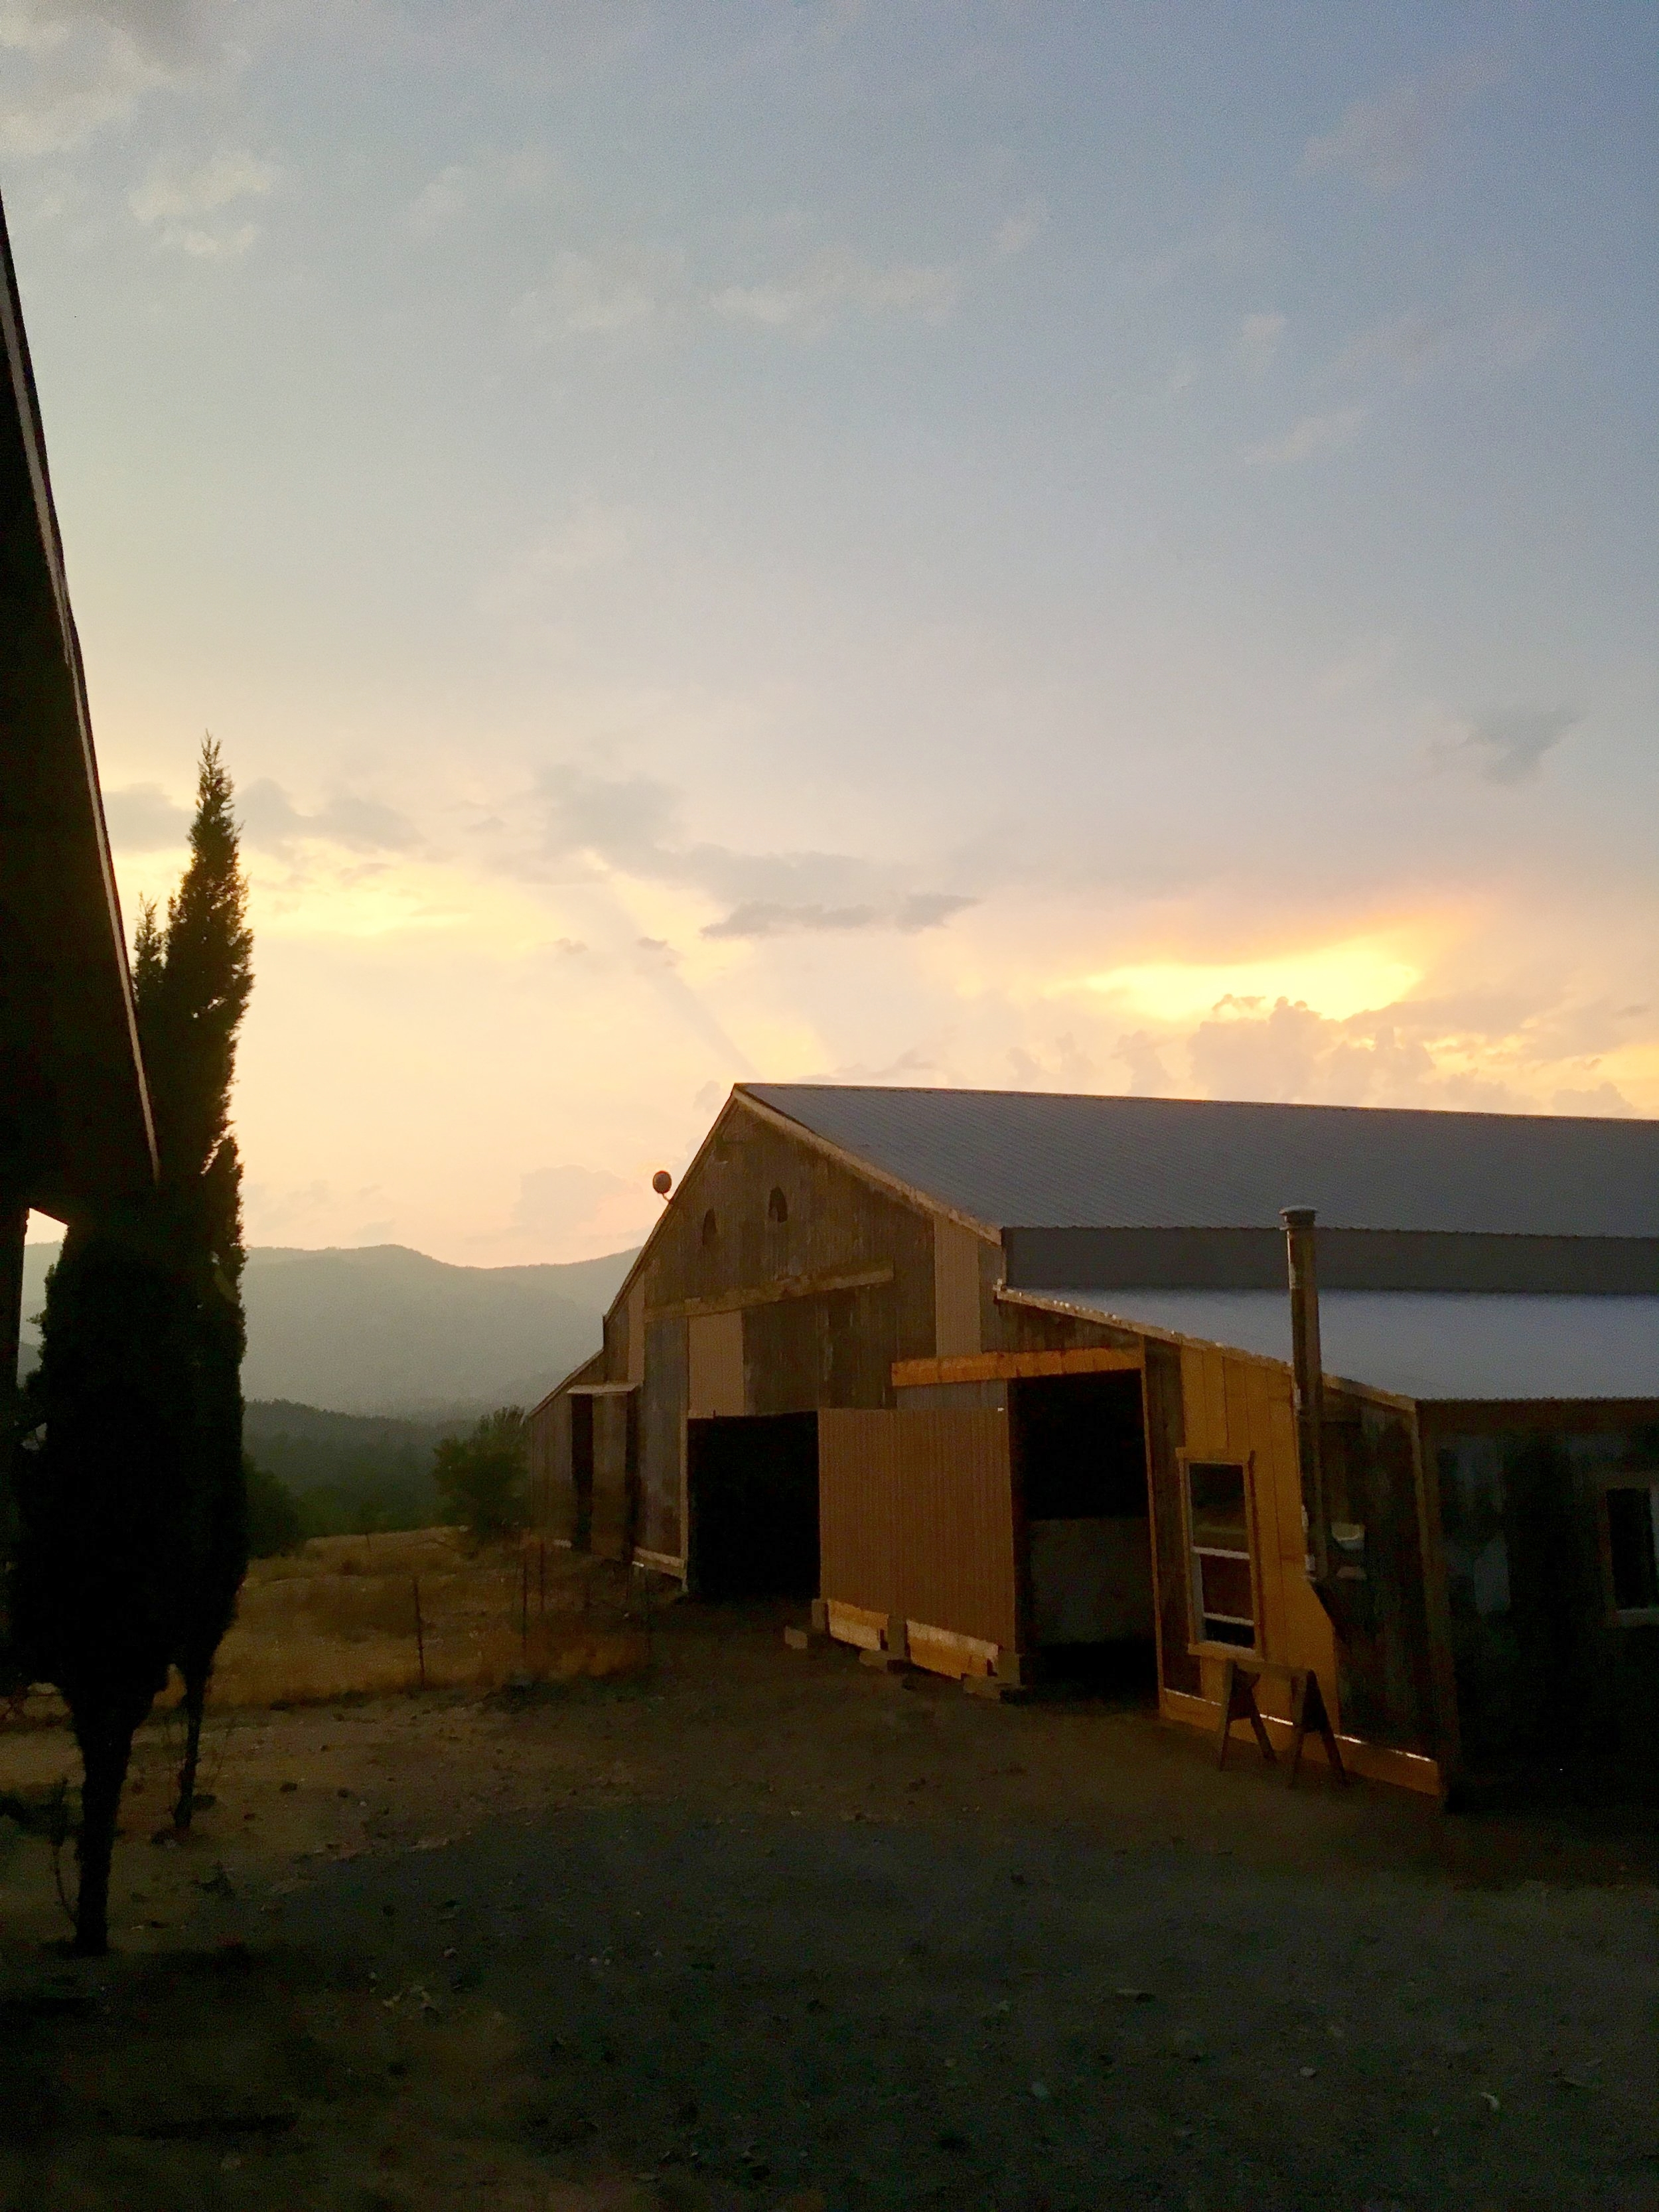 A beautiful summer sunset over the barn.